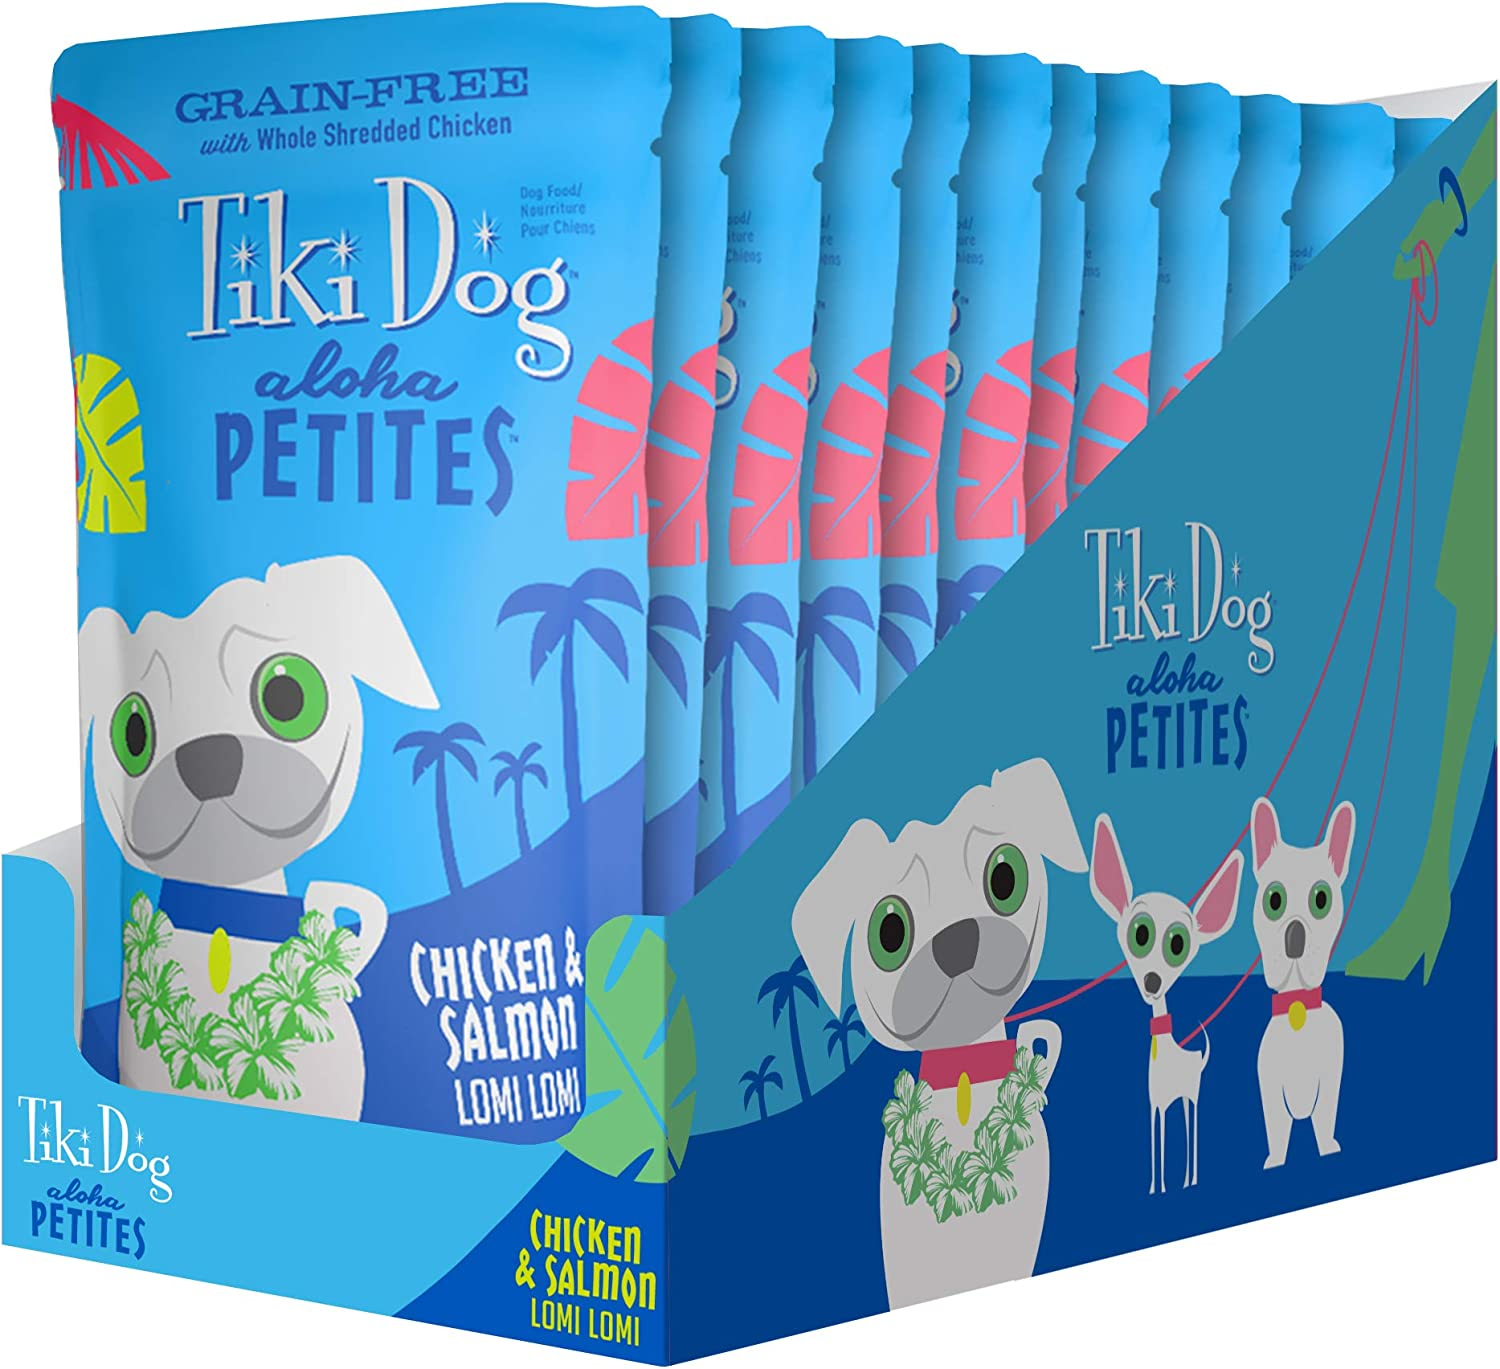 Tiki Dog Aloha Petites Gluten & Grain Free Wet Food in a Pouch for Adult Dogs with Shredded Meat & Superfoods, 3.5oz 12pk, Chicken & Salmon Lomi Lomi